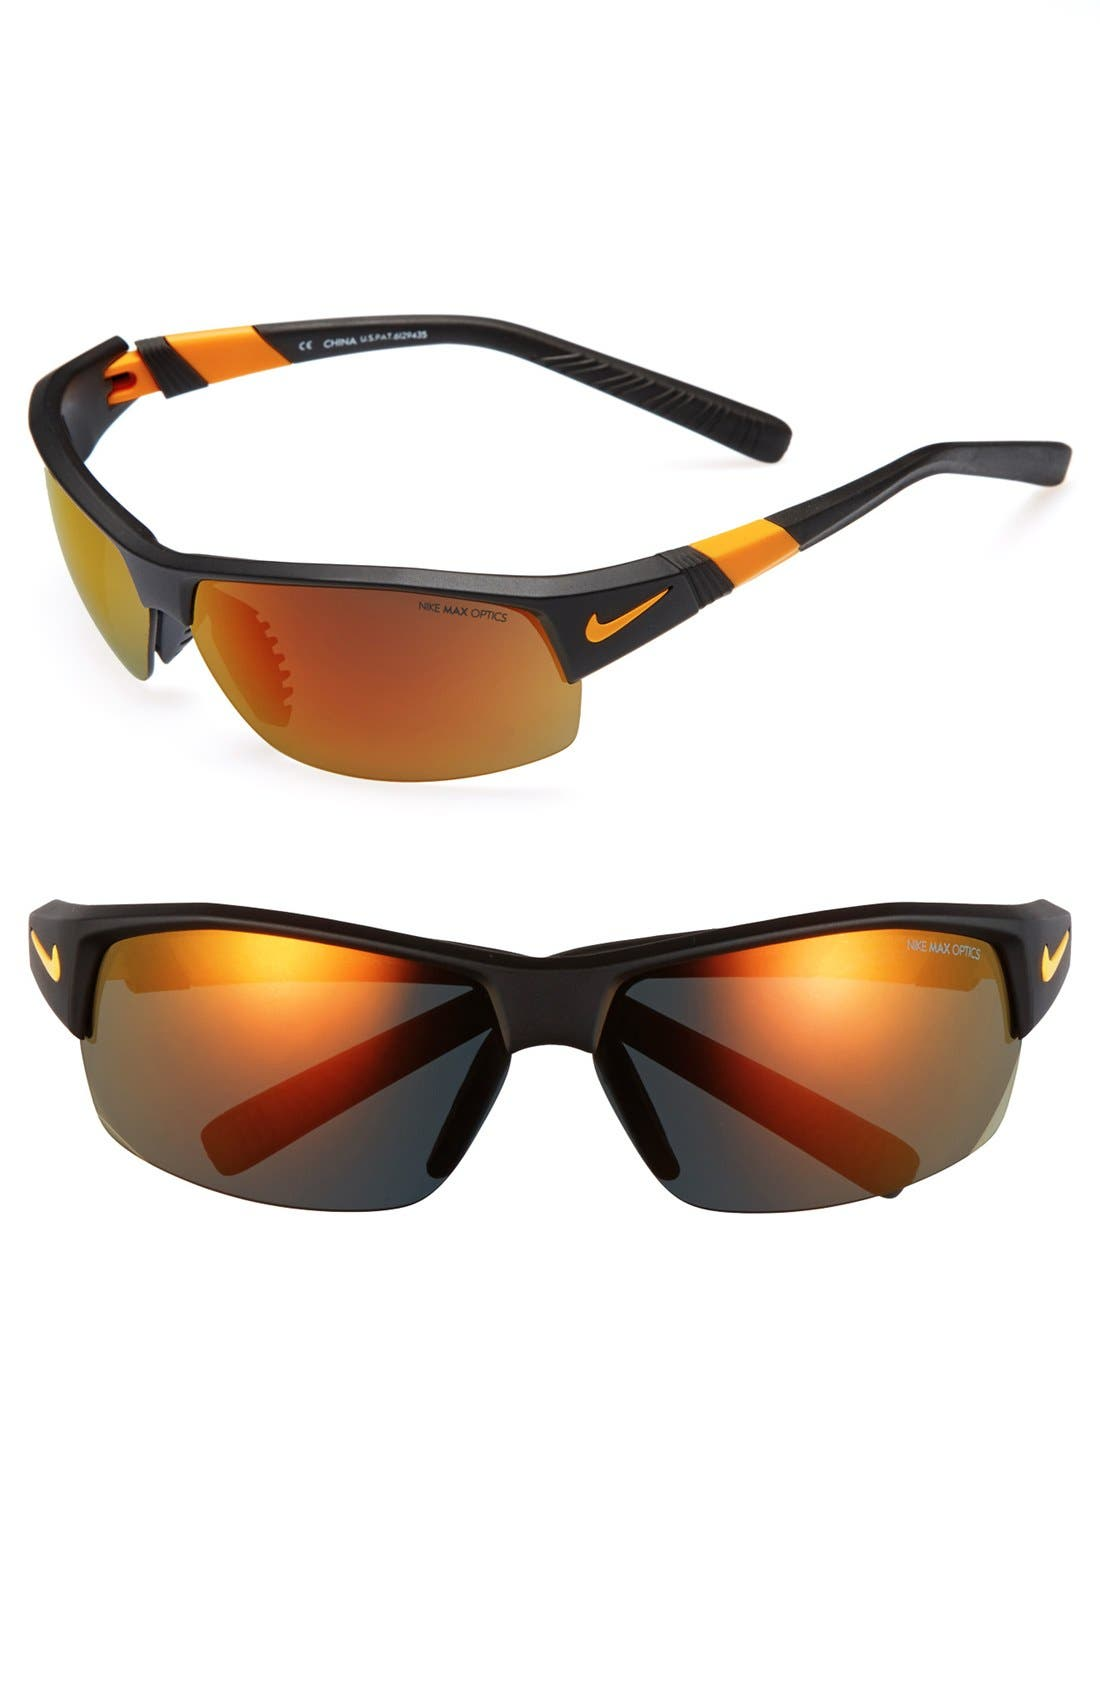 Alternate Image 1 Selected - Nike 69mm Wrap Sunglasses